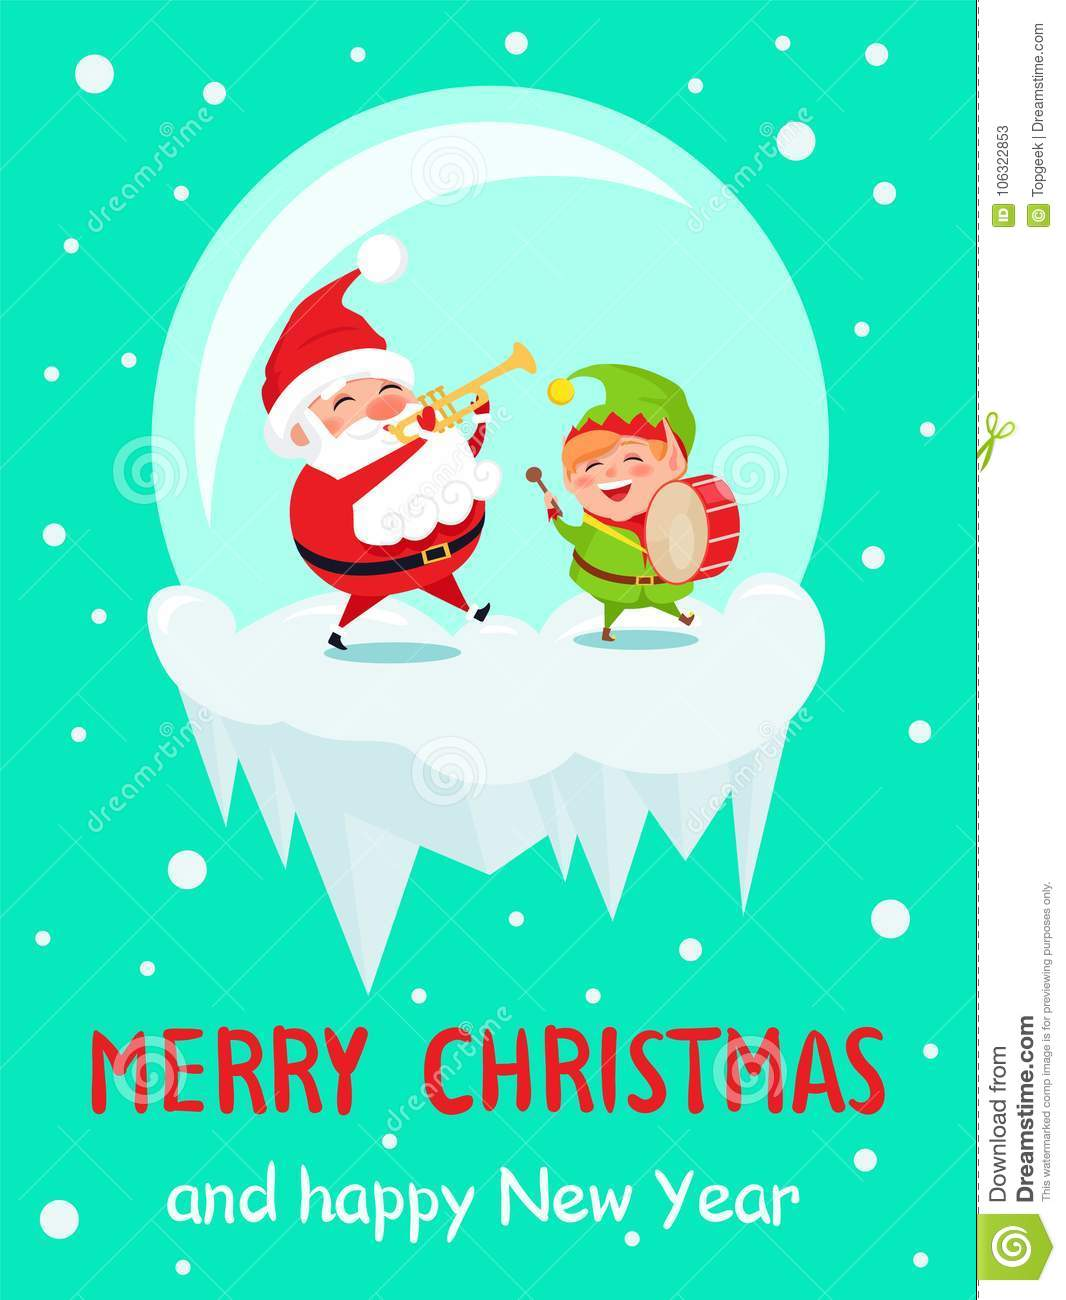 Merry Christmas And Happy New Year Greeting Cards Stock Vector